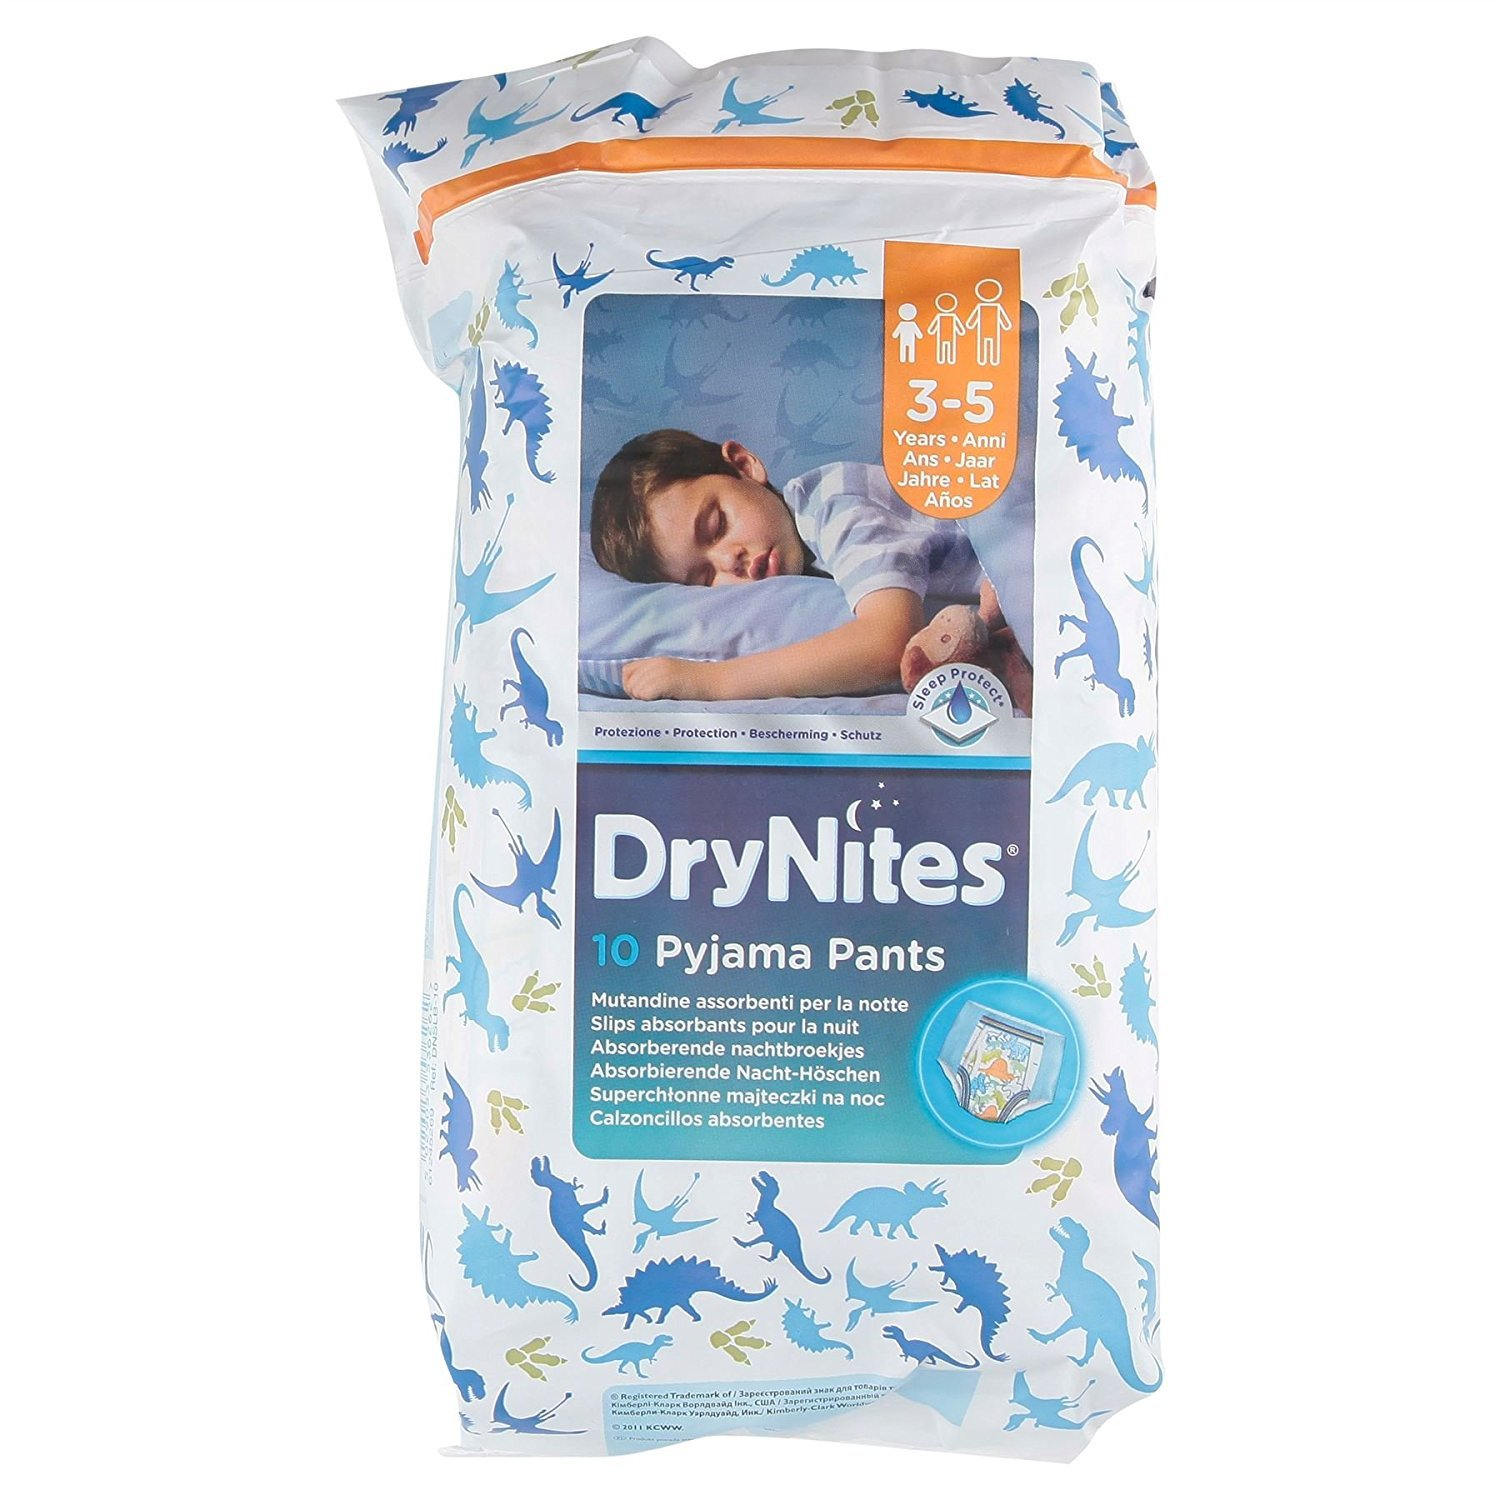 DryNites 3-5 Years 10 Pyjama Pants Live in Morrisons